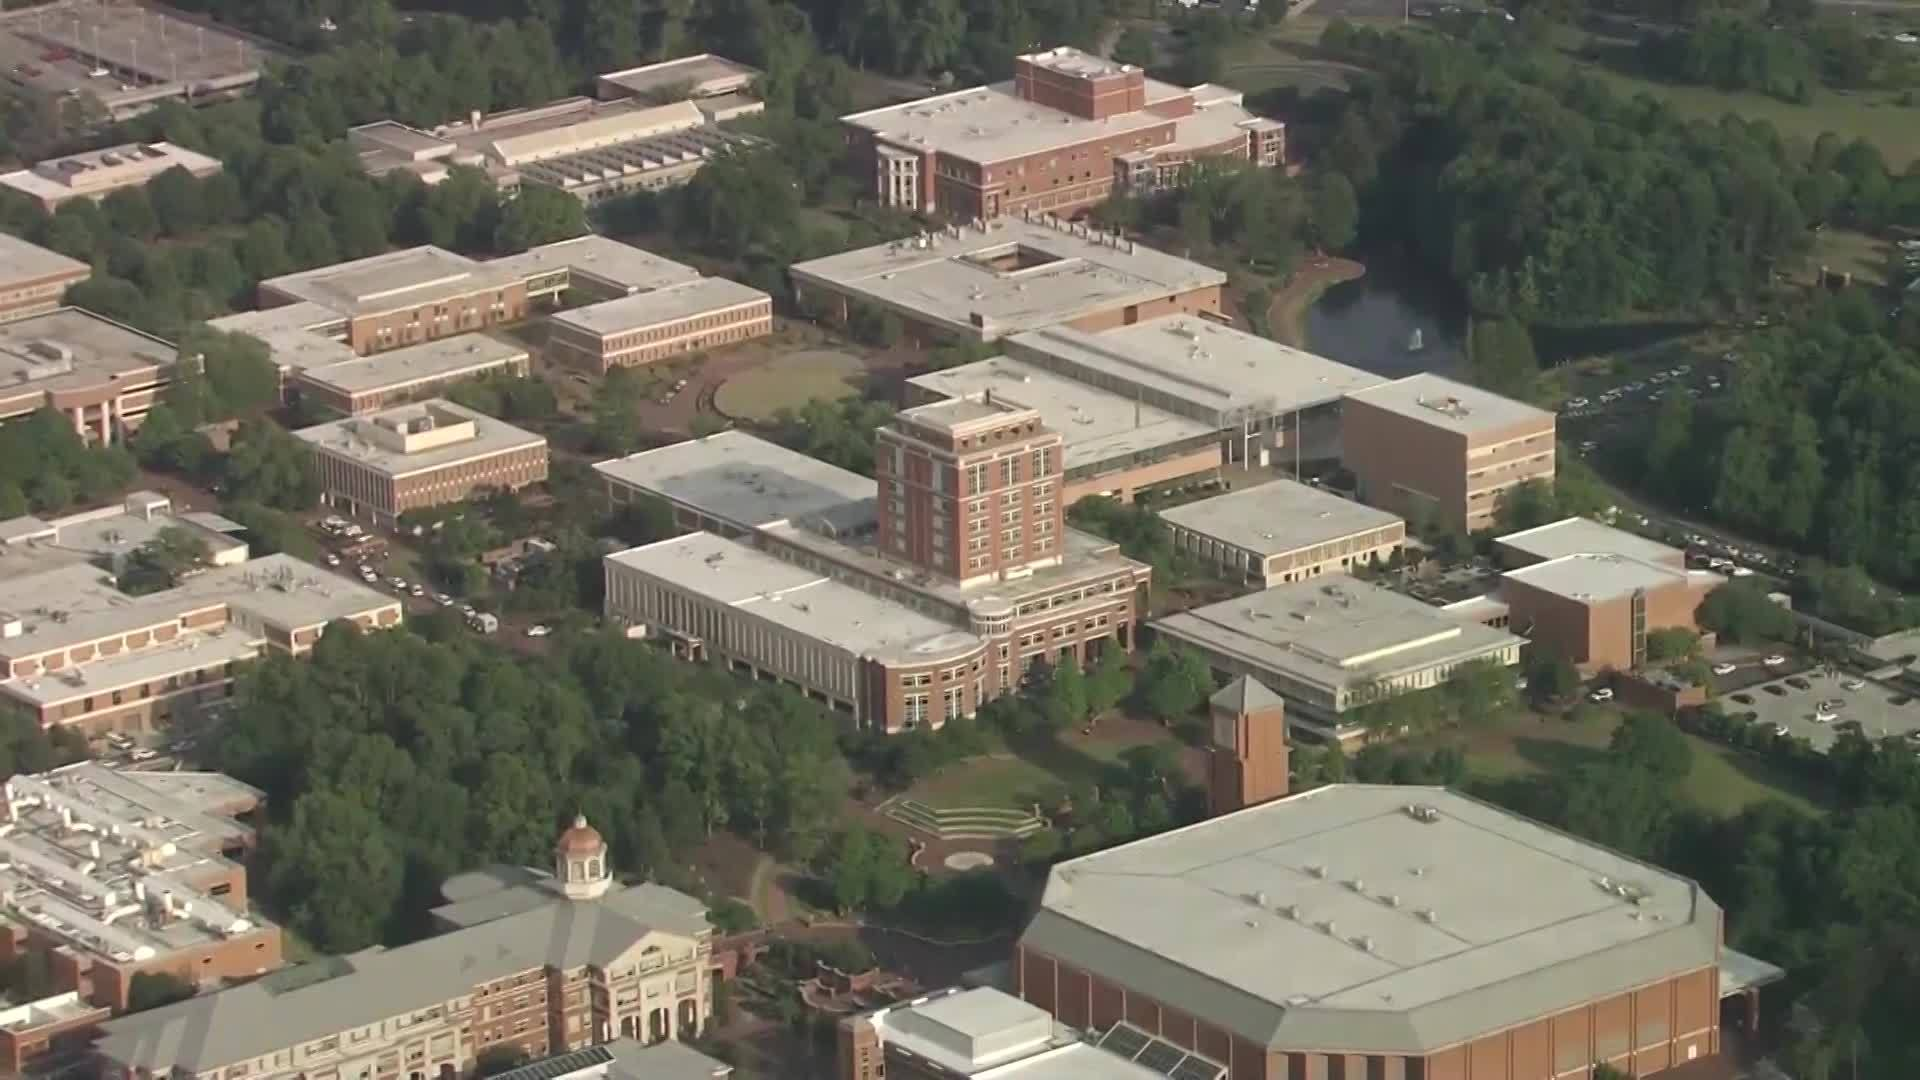 UNCC shots fired report (courtesy: WBTV via CBS Newspath)